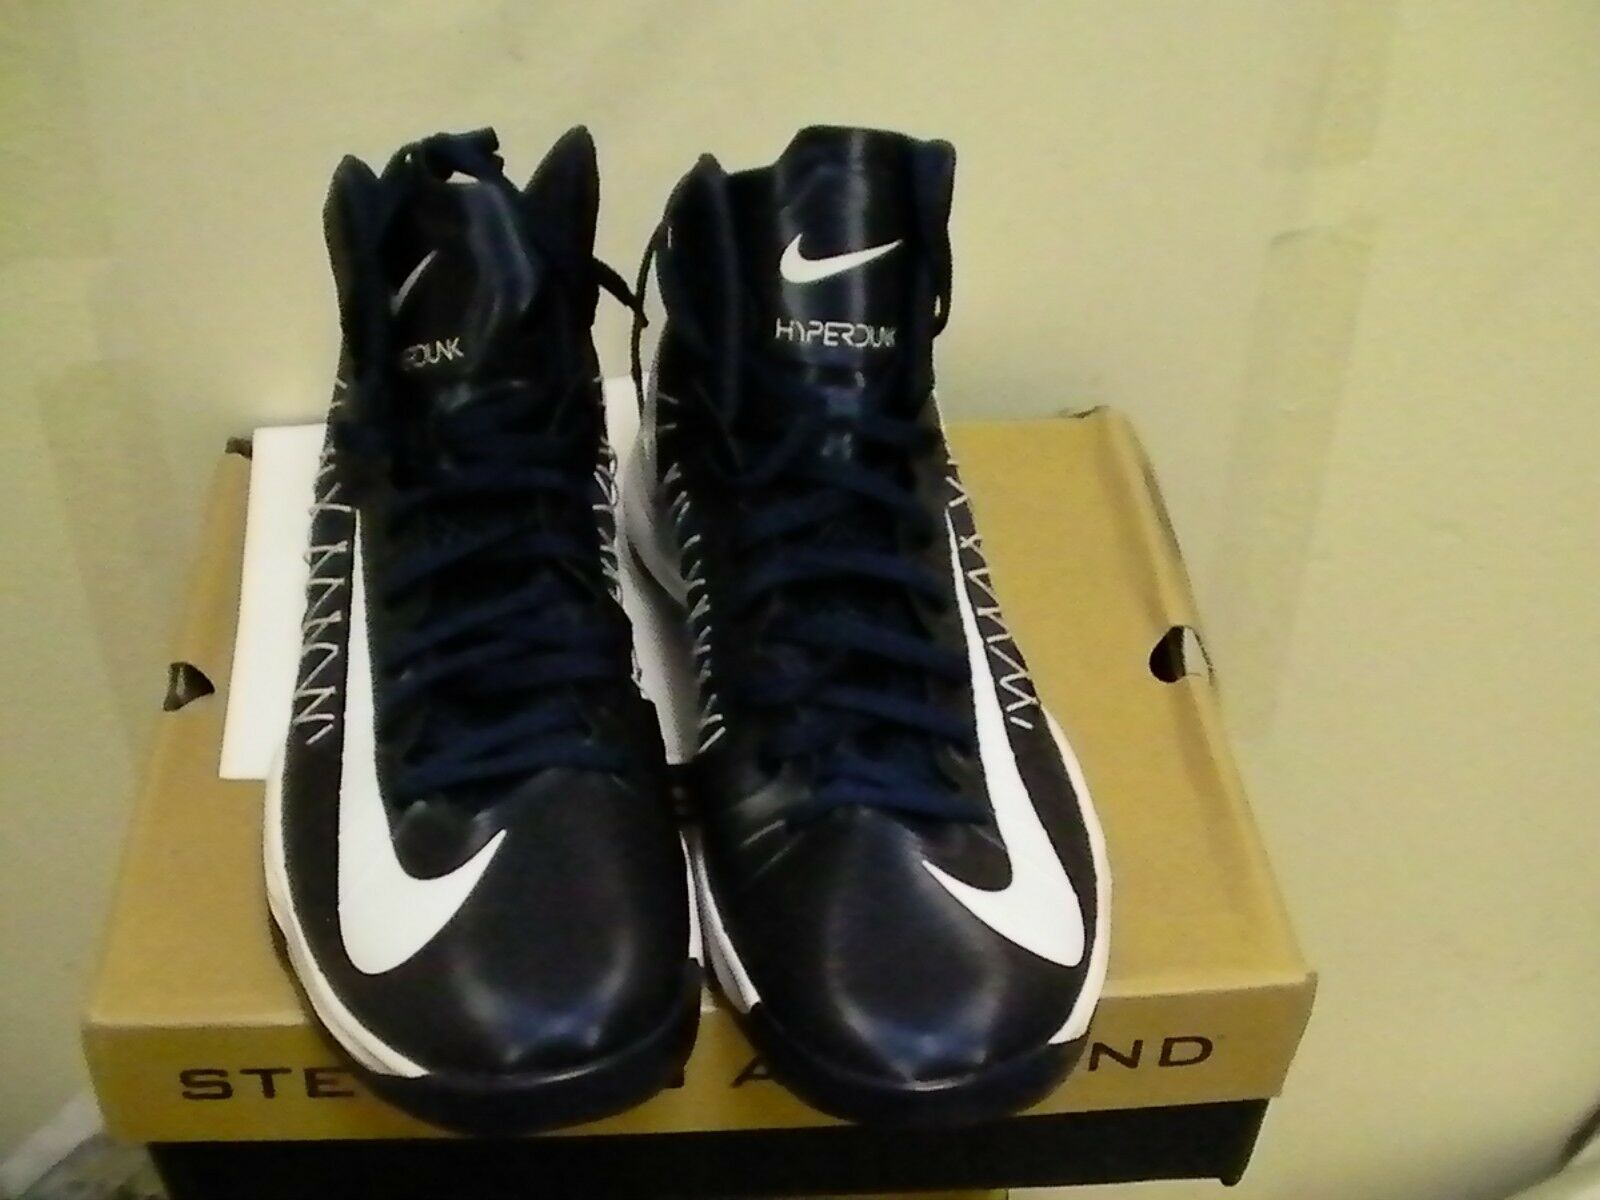 Nike men hyperdunk basketball shoes size 18 us navy blue